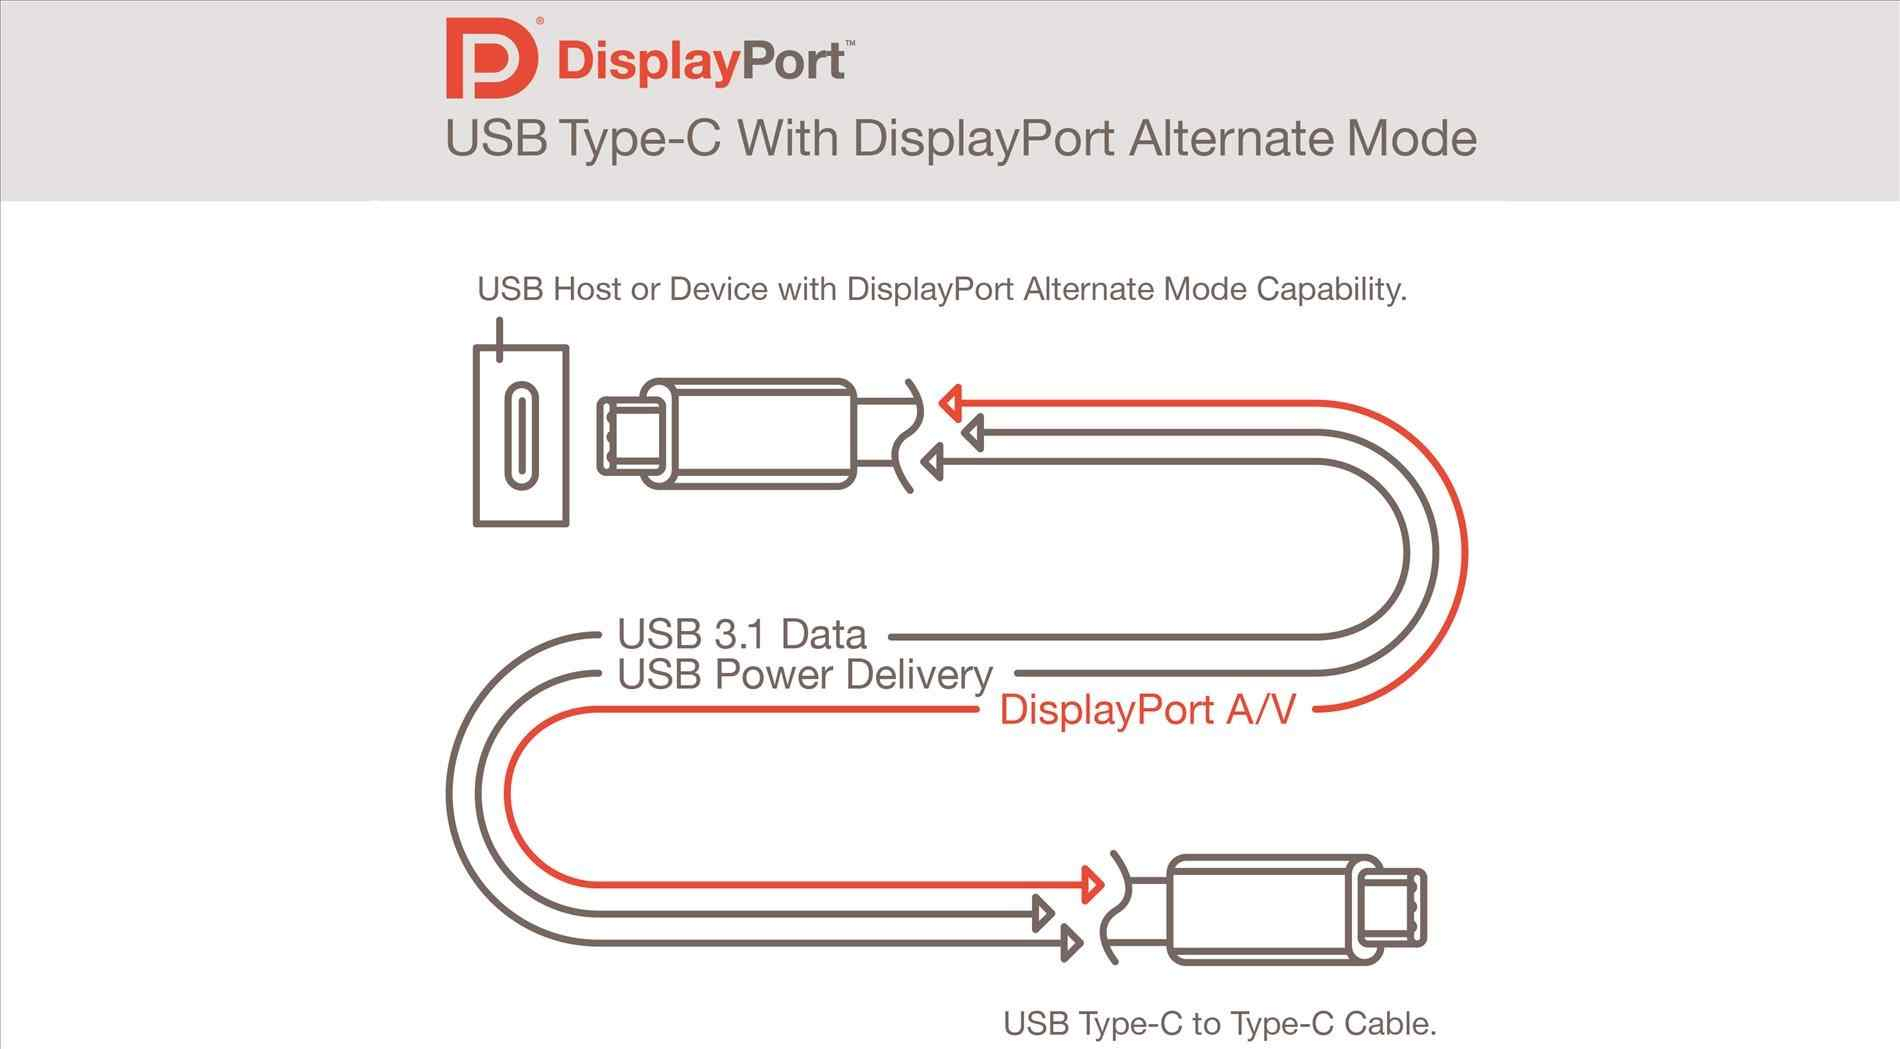 Hdmi Type A Wiring Diagram | Wiring Library - Wiring Diagram Usb-C